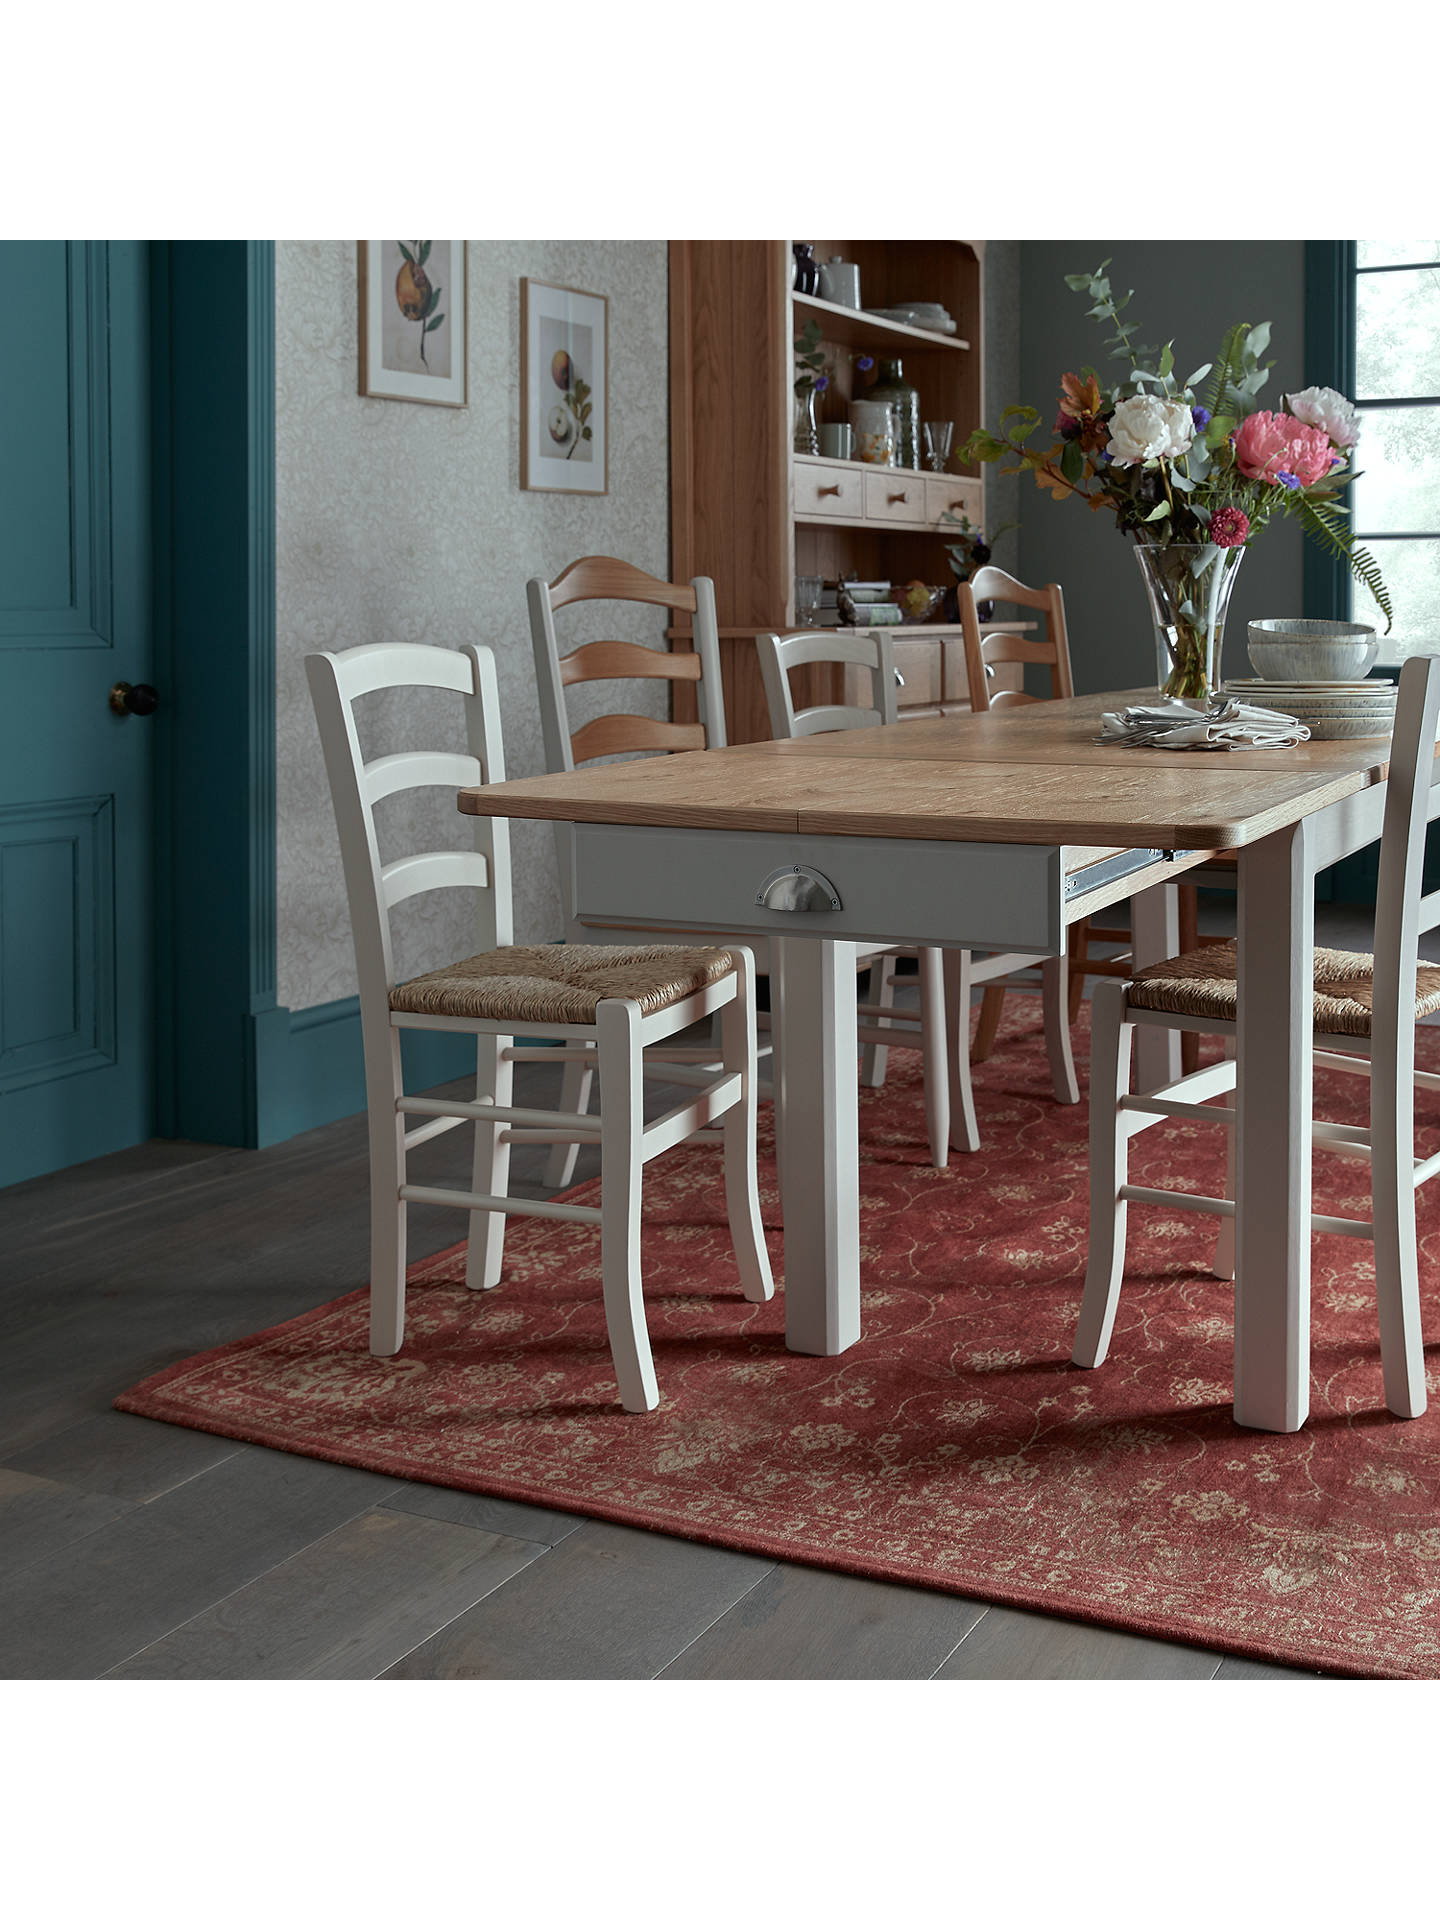 John Lewis & Partners Audley Dining Chairs, Set of Two at John